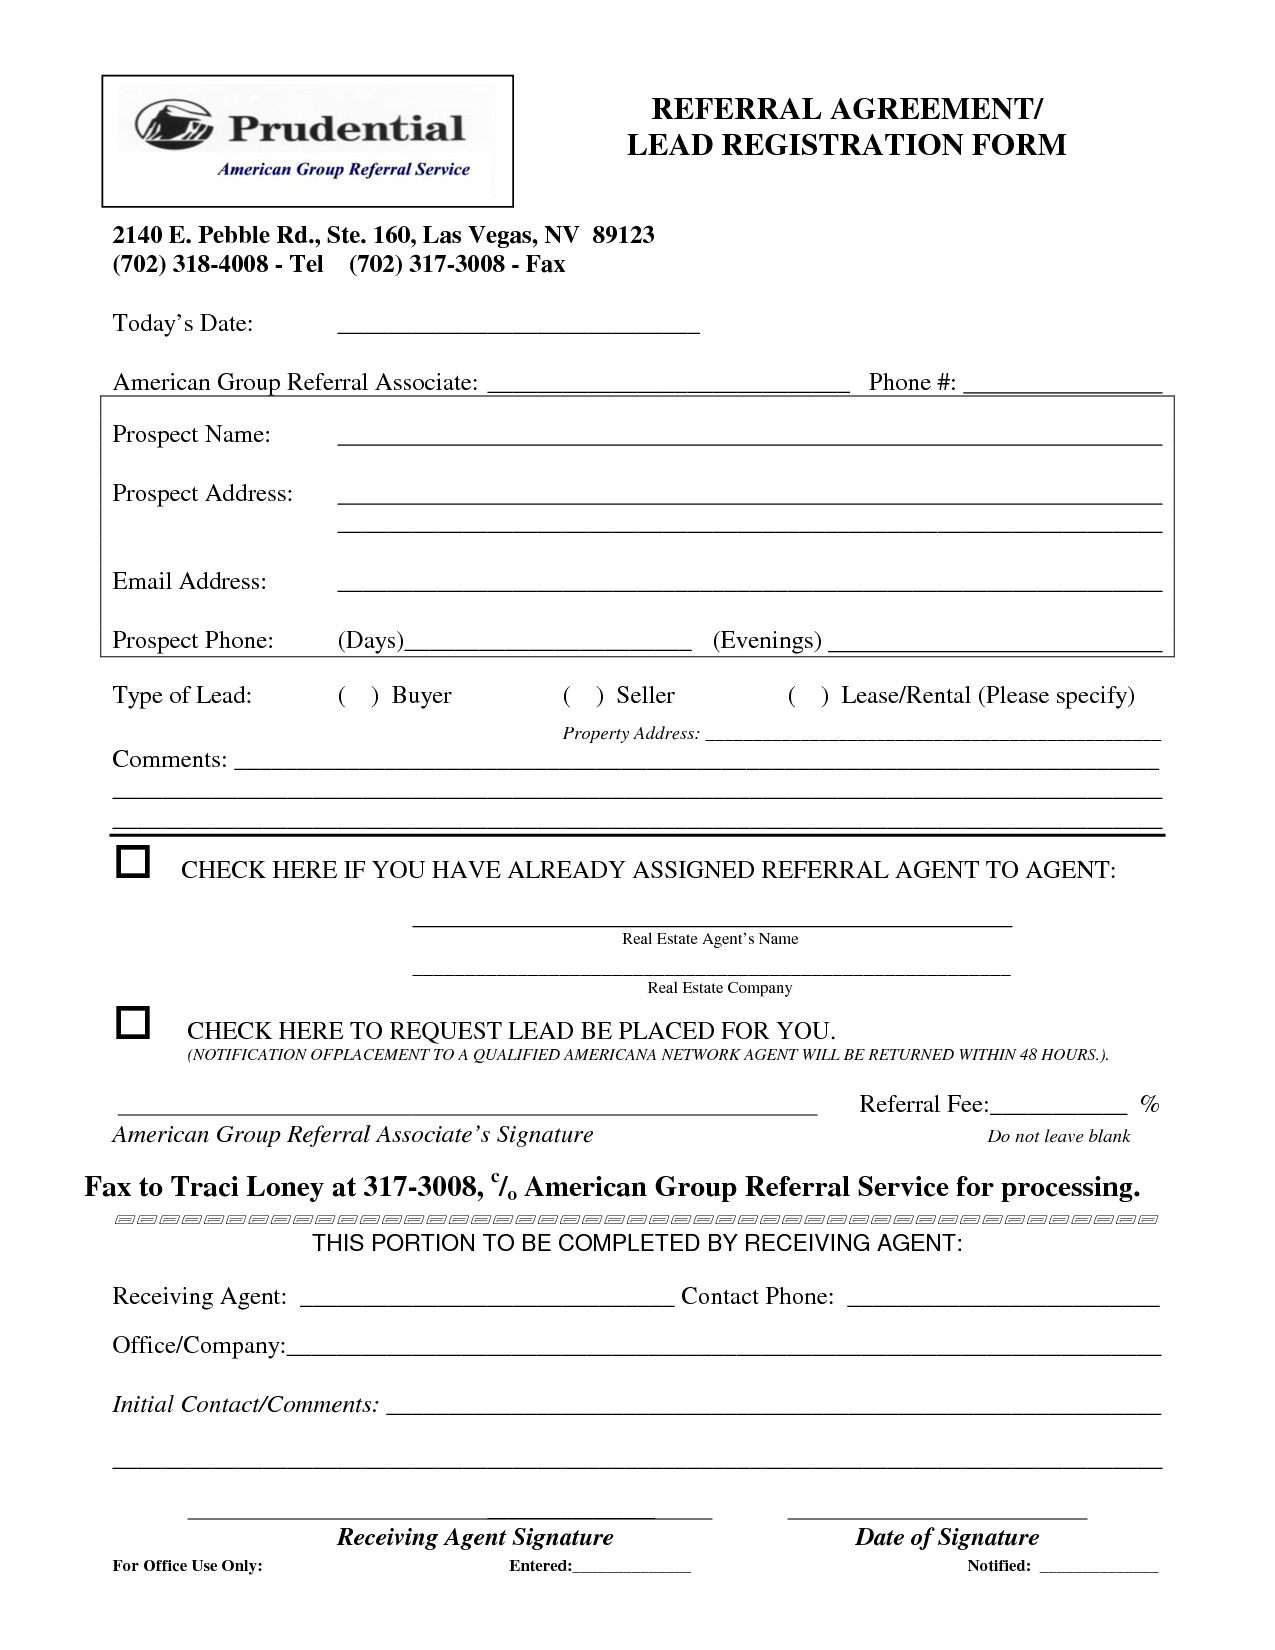 Real Estate Referral form Real Estate Agent Referral Agreement